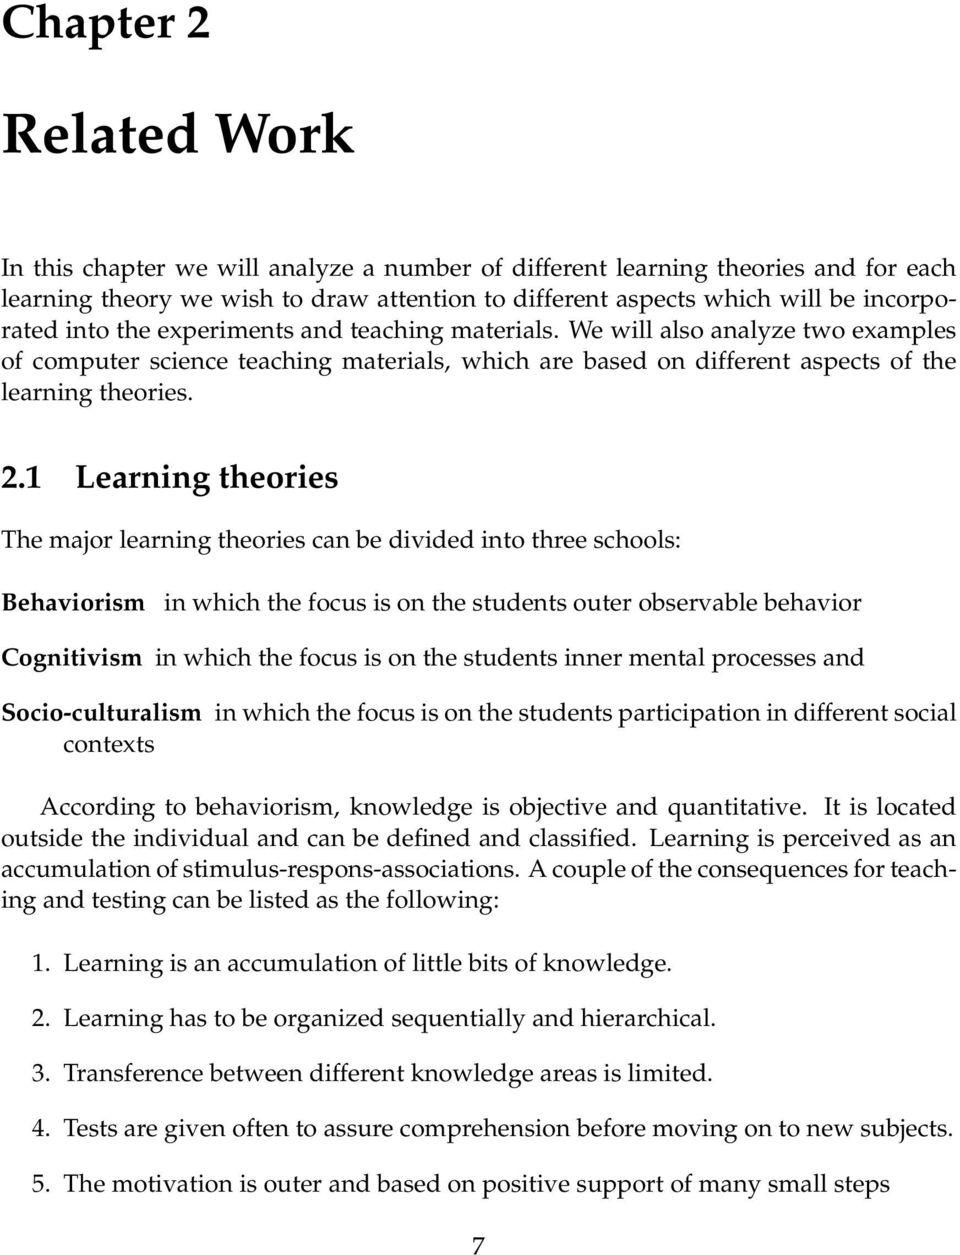 1 Learning theories The major learning theories can be divided into three schools: Behaviorism in which the focus is on the students outer observable behavior Cognitivism in which the focus is on the